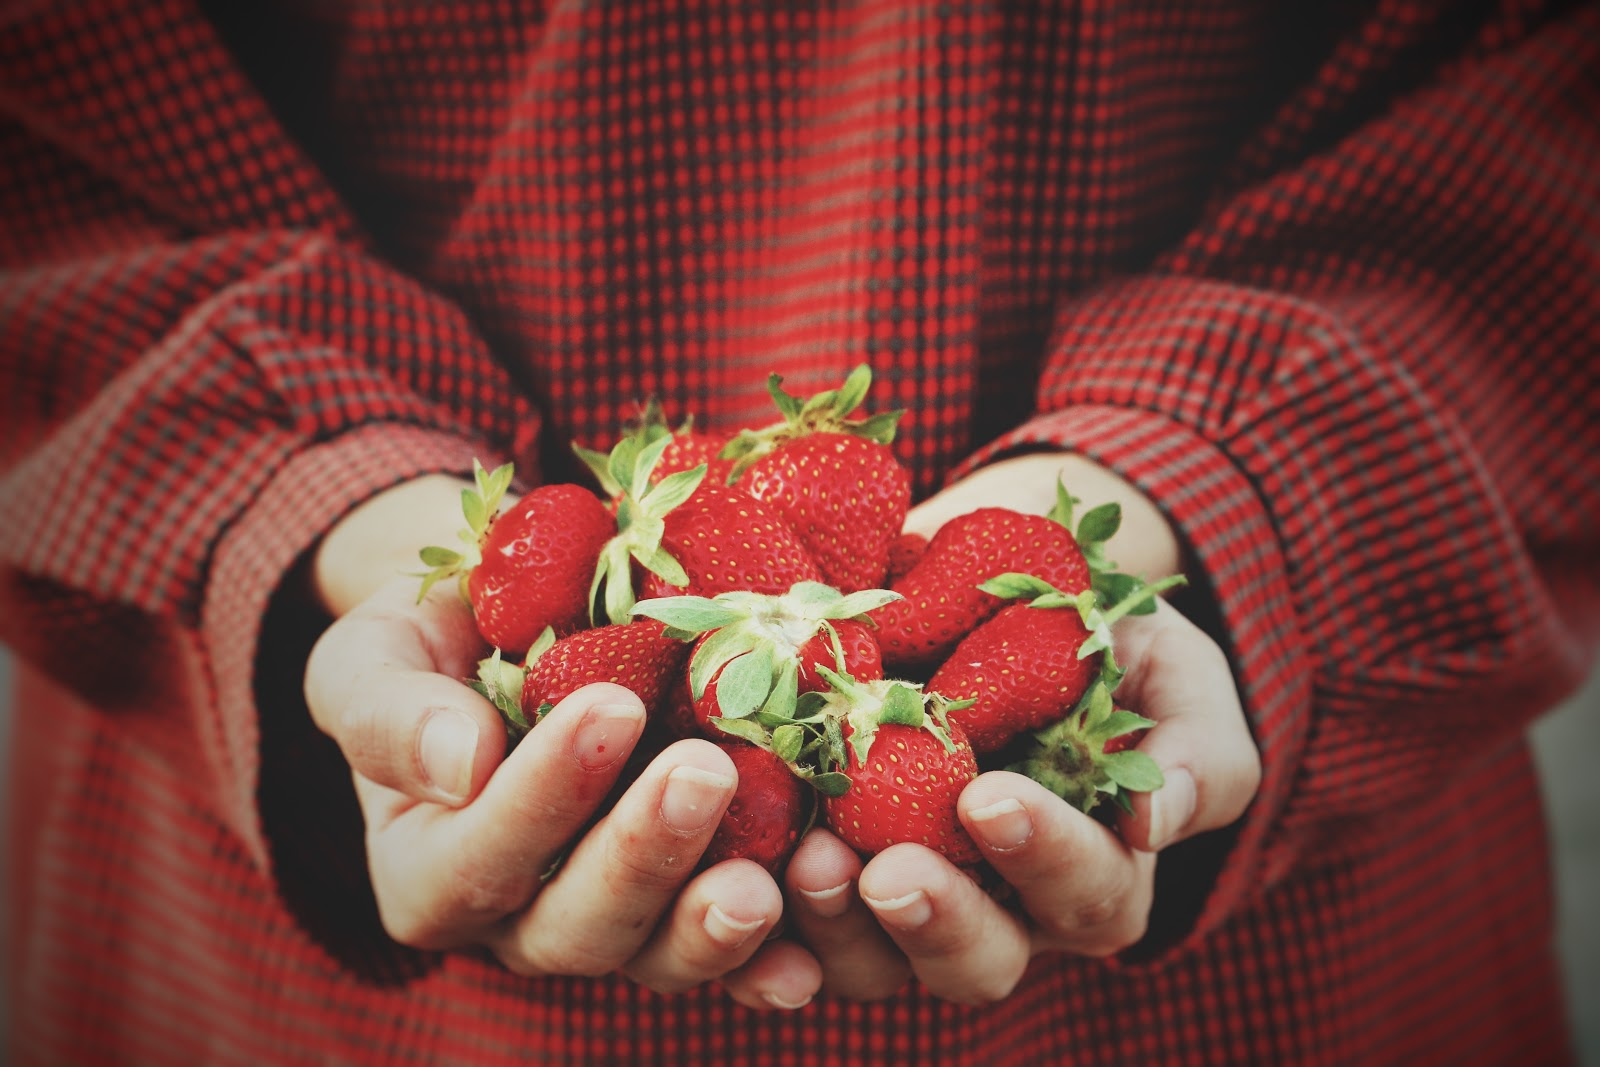 Gut cleanse: hands hold strawberries